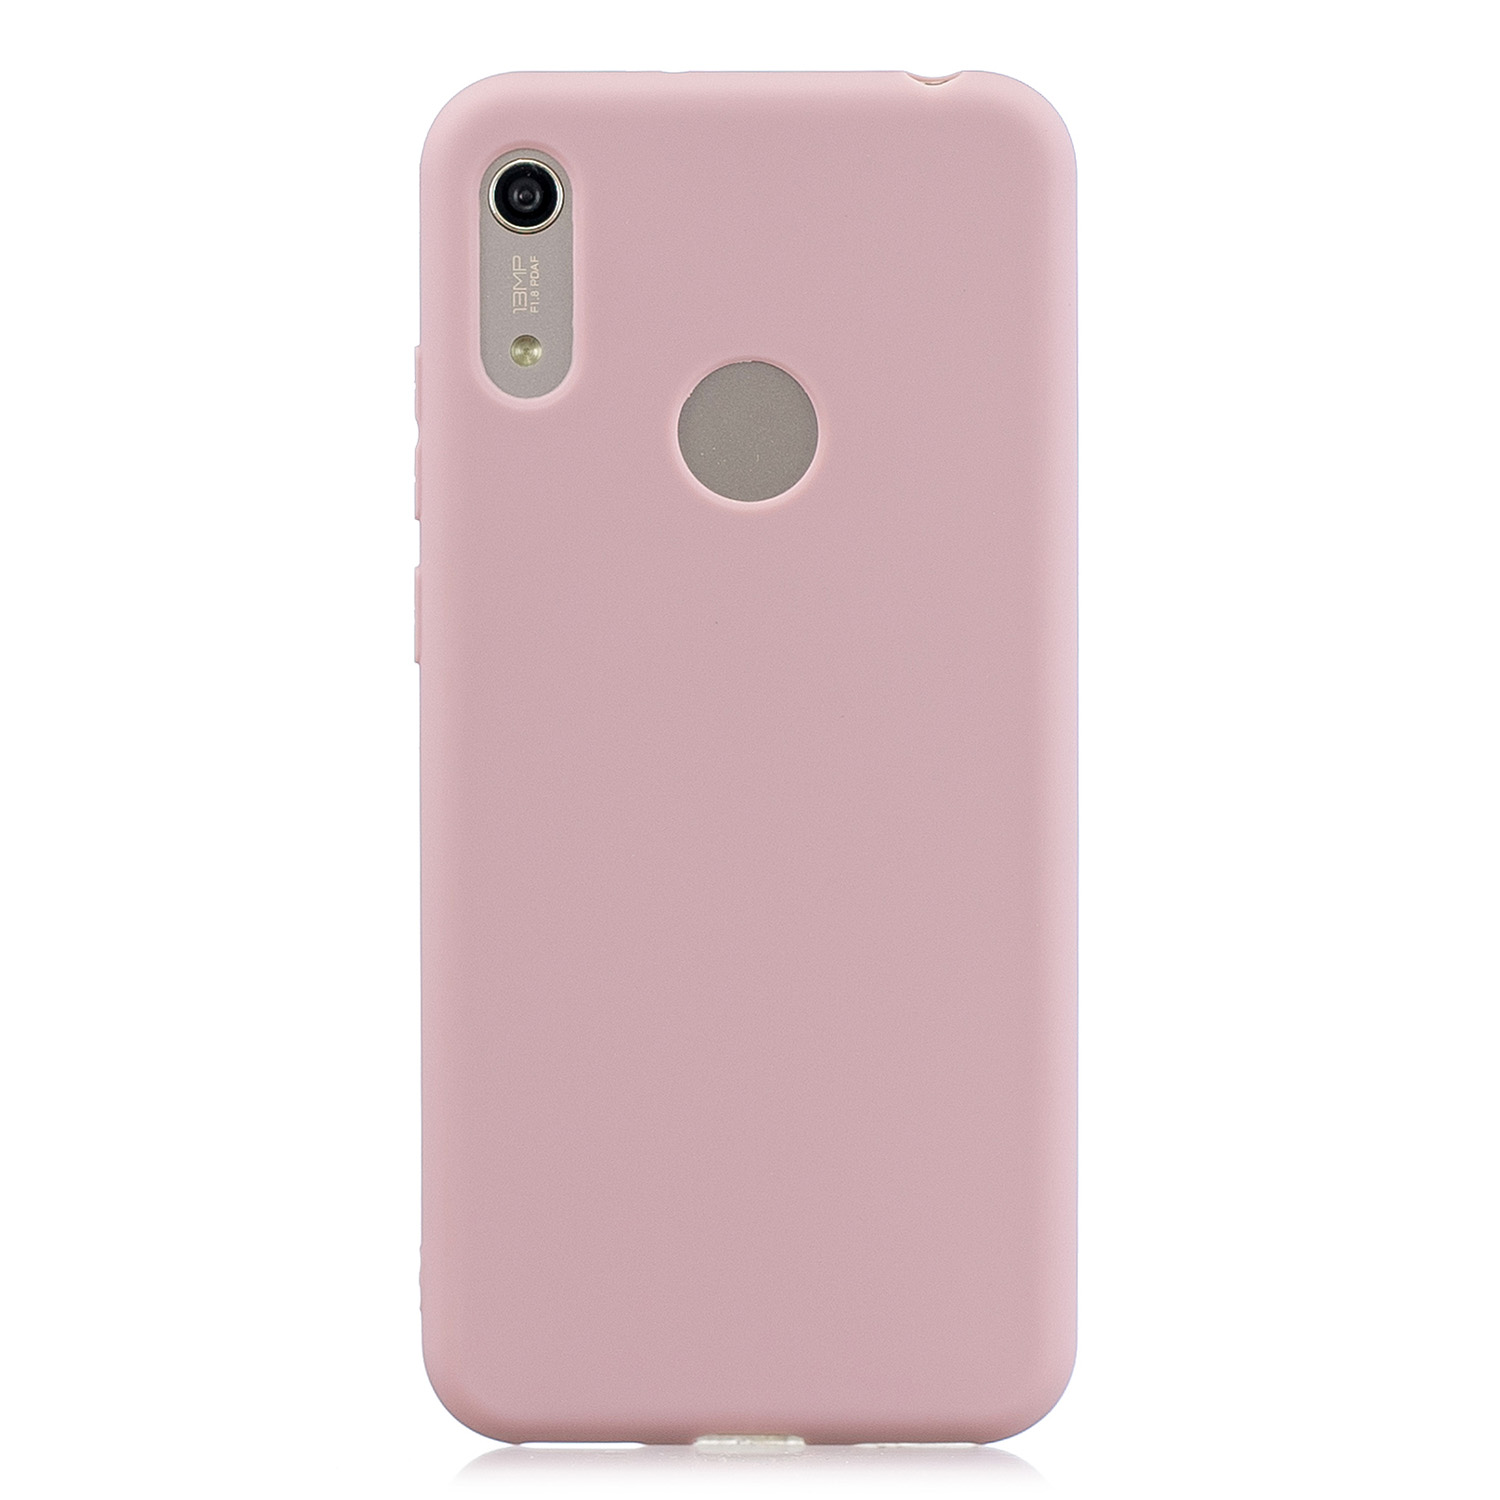 For HUAWEI Y6 2019 Lovely Candy Color Matte TPU Anti-scratch Non-slip Protective Cover Back Case 11